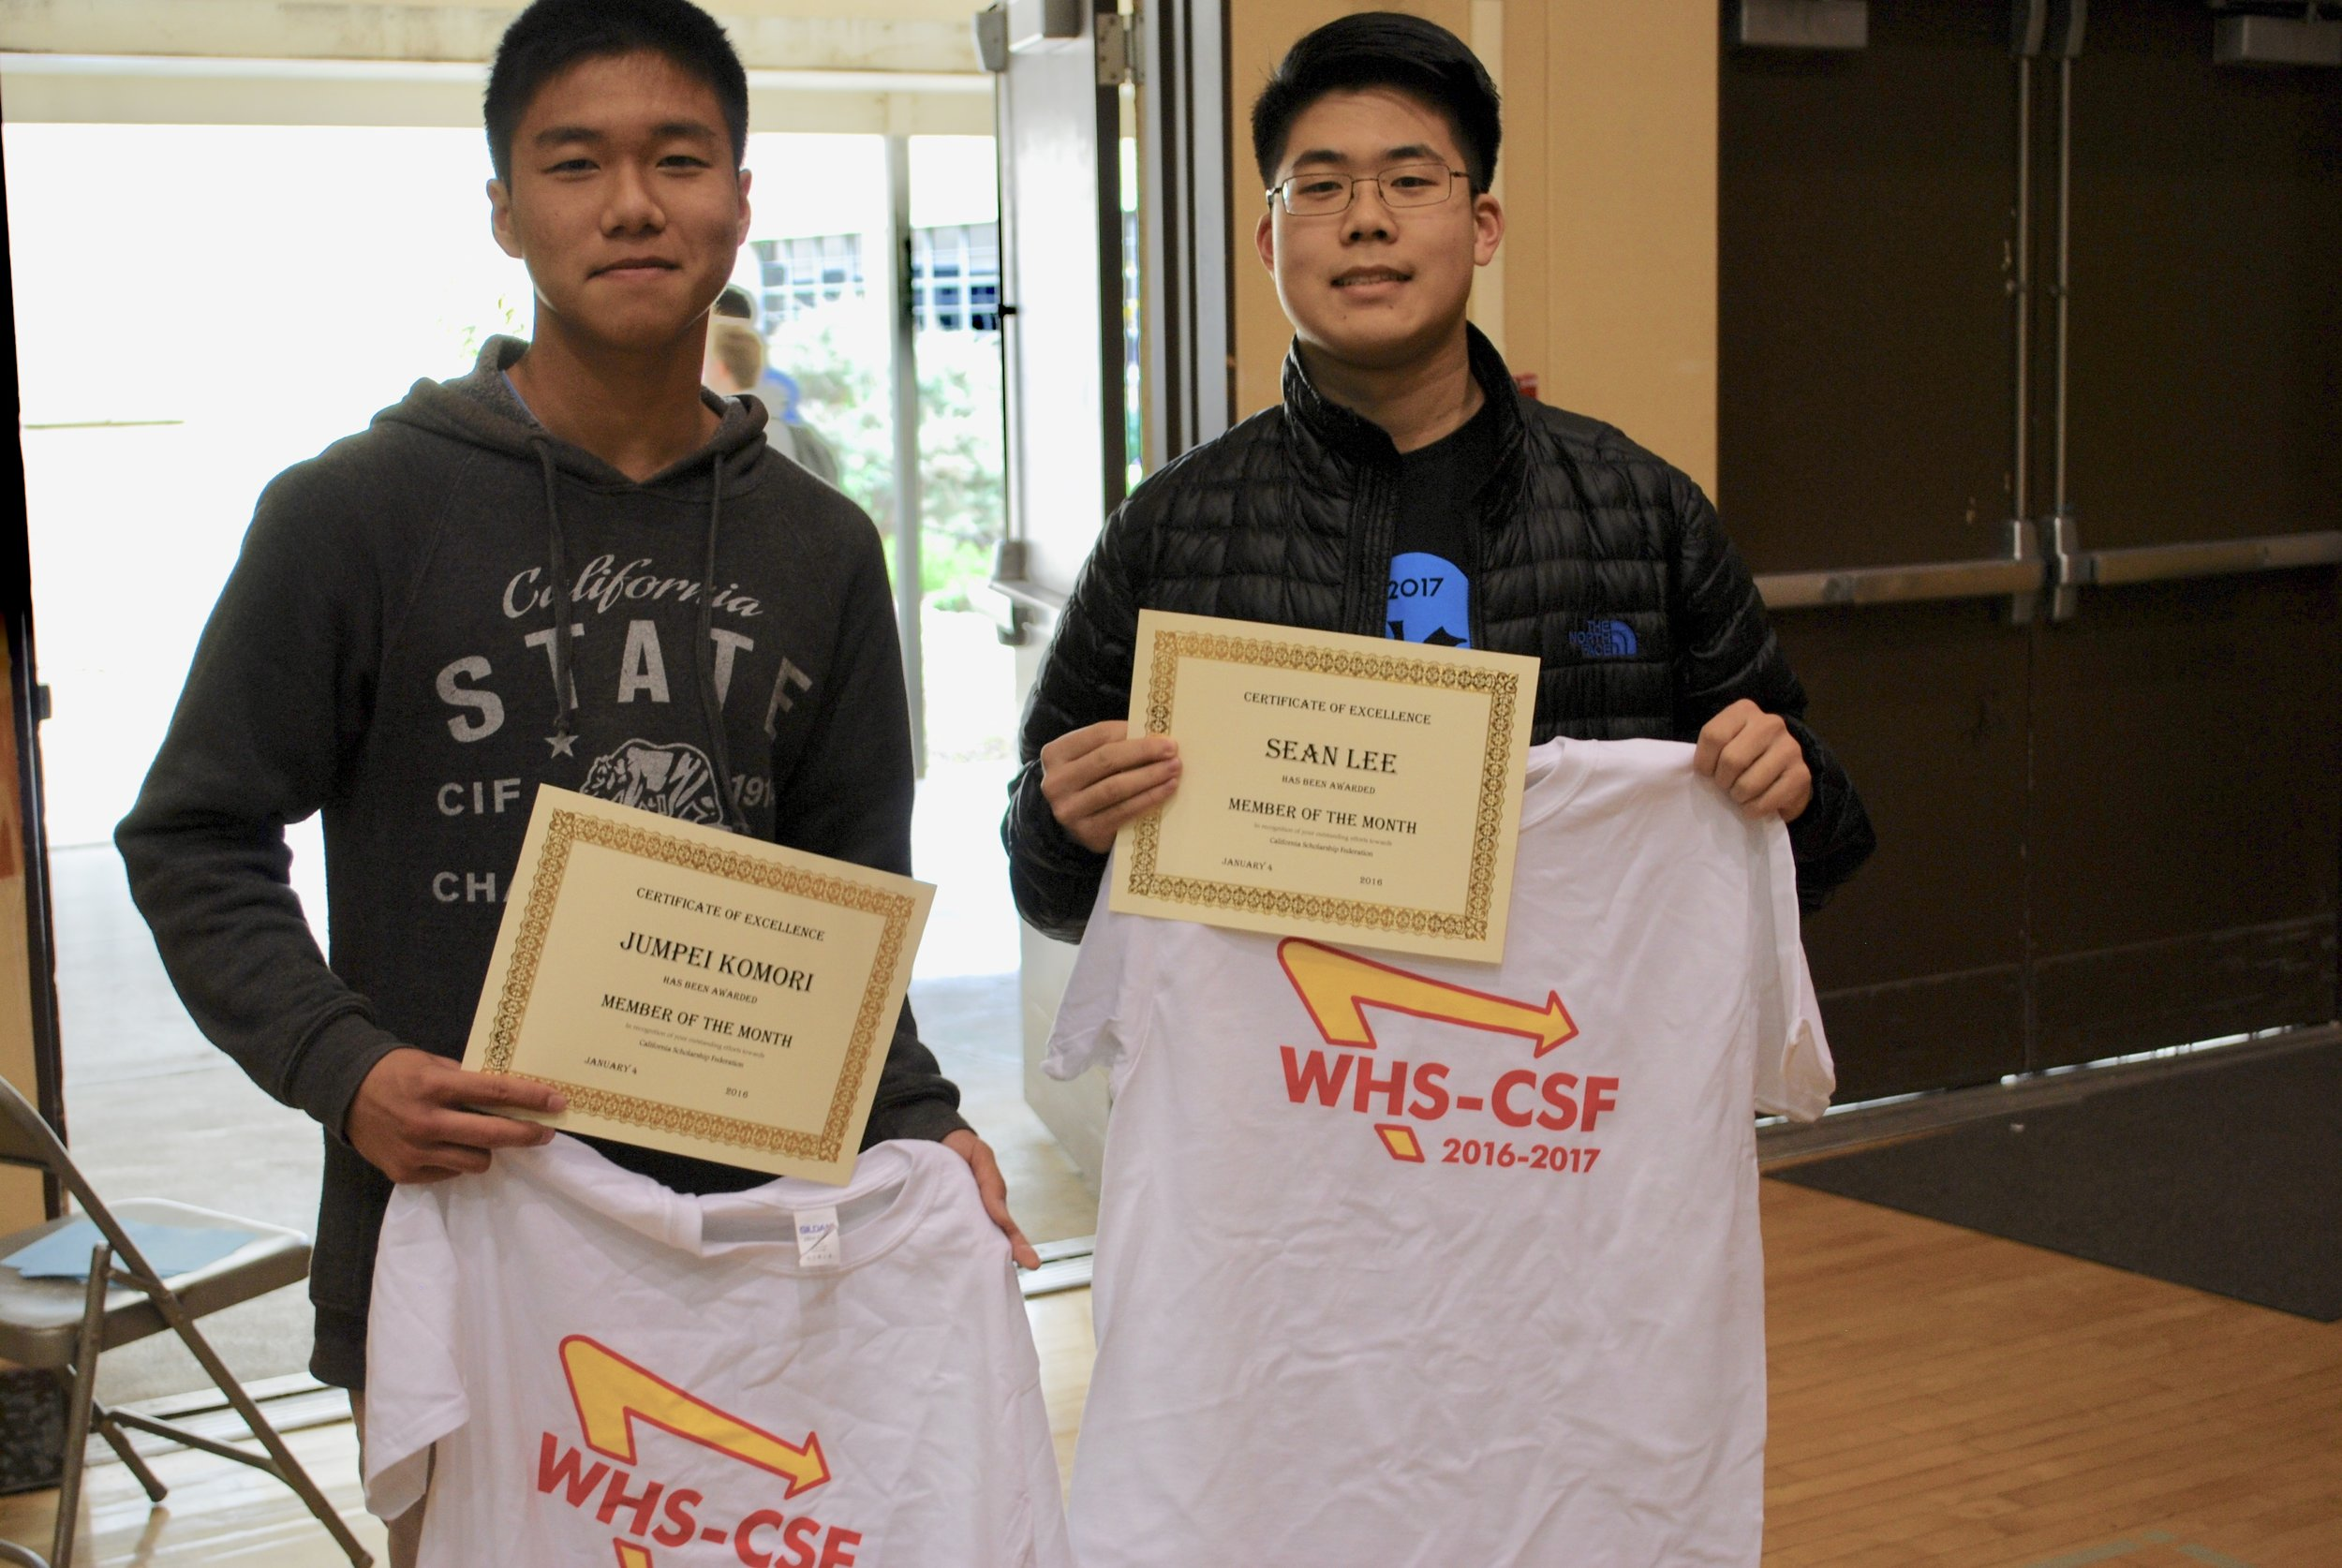 Congrats to our members of the month: Jumpei Komori (left) and Sean Lee (right)!